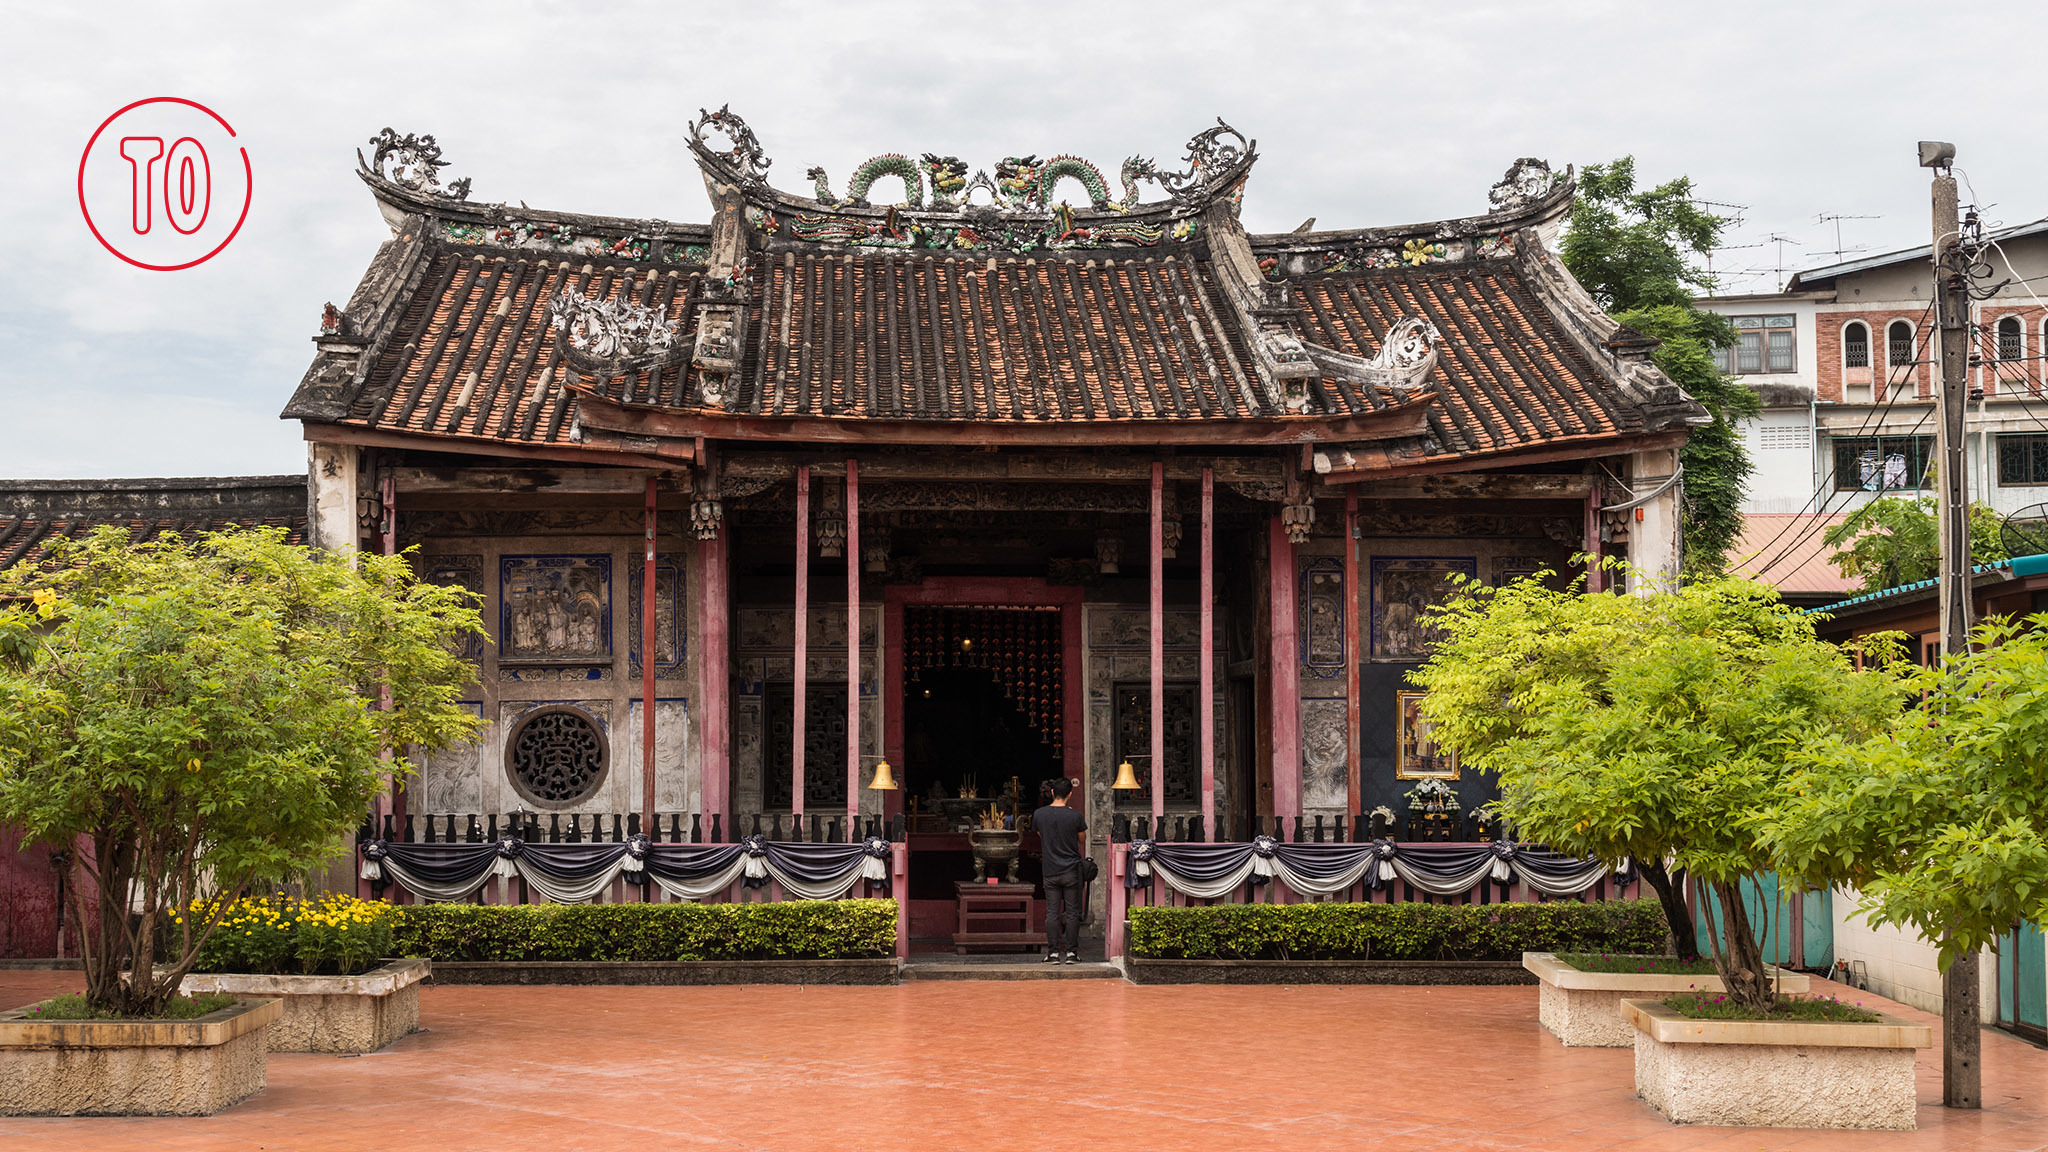 Kuan An Keng Shrine